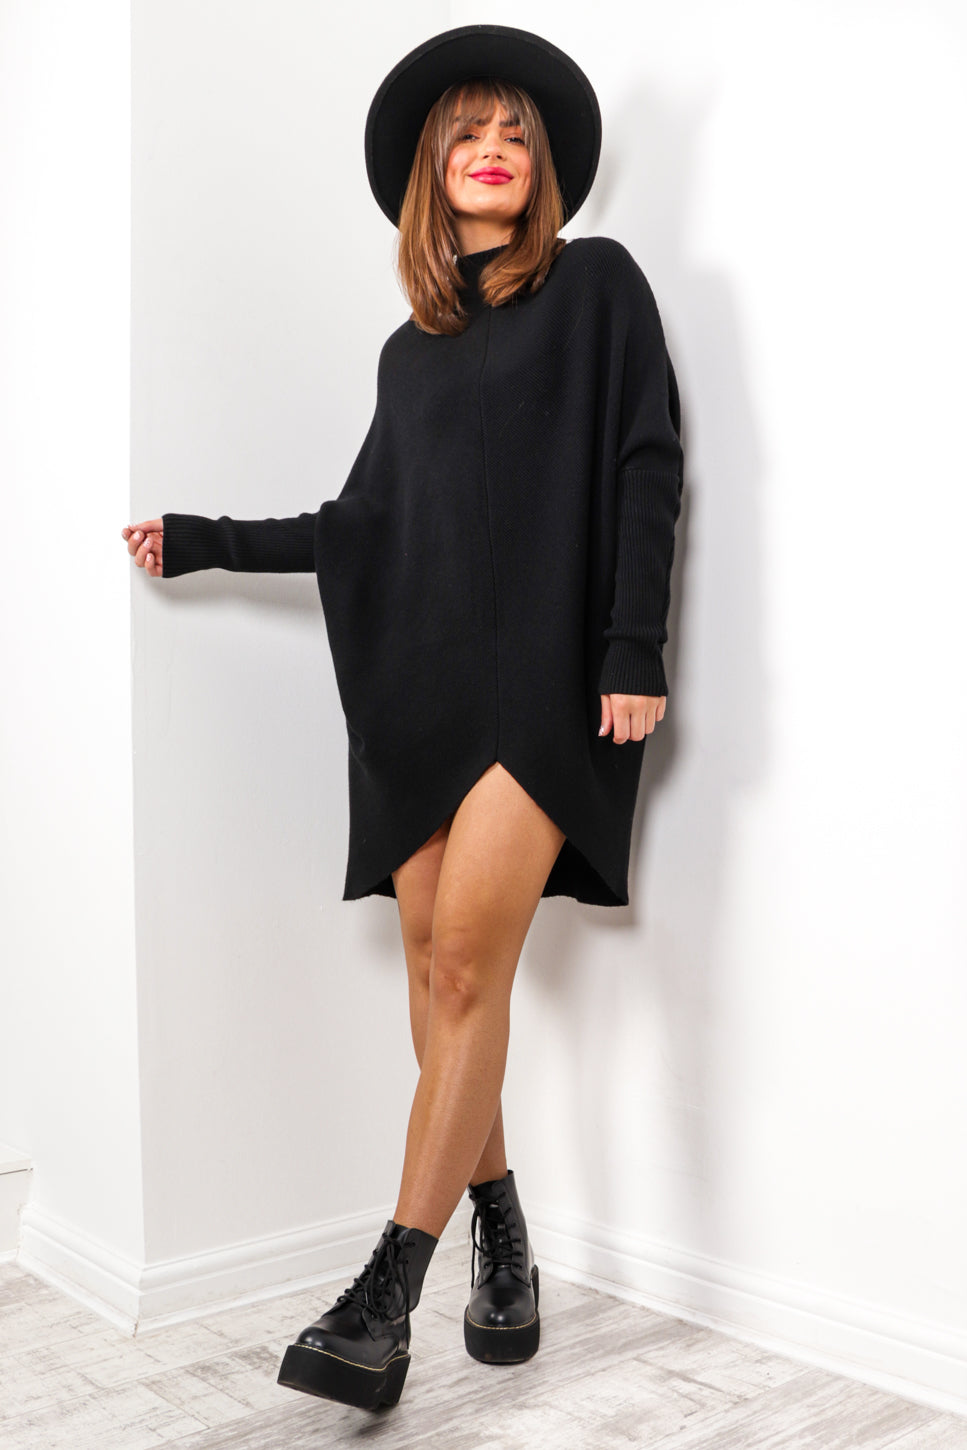 Oh So Plain - Black Knitted Jumper Dress